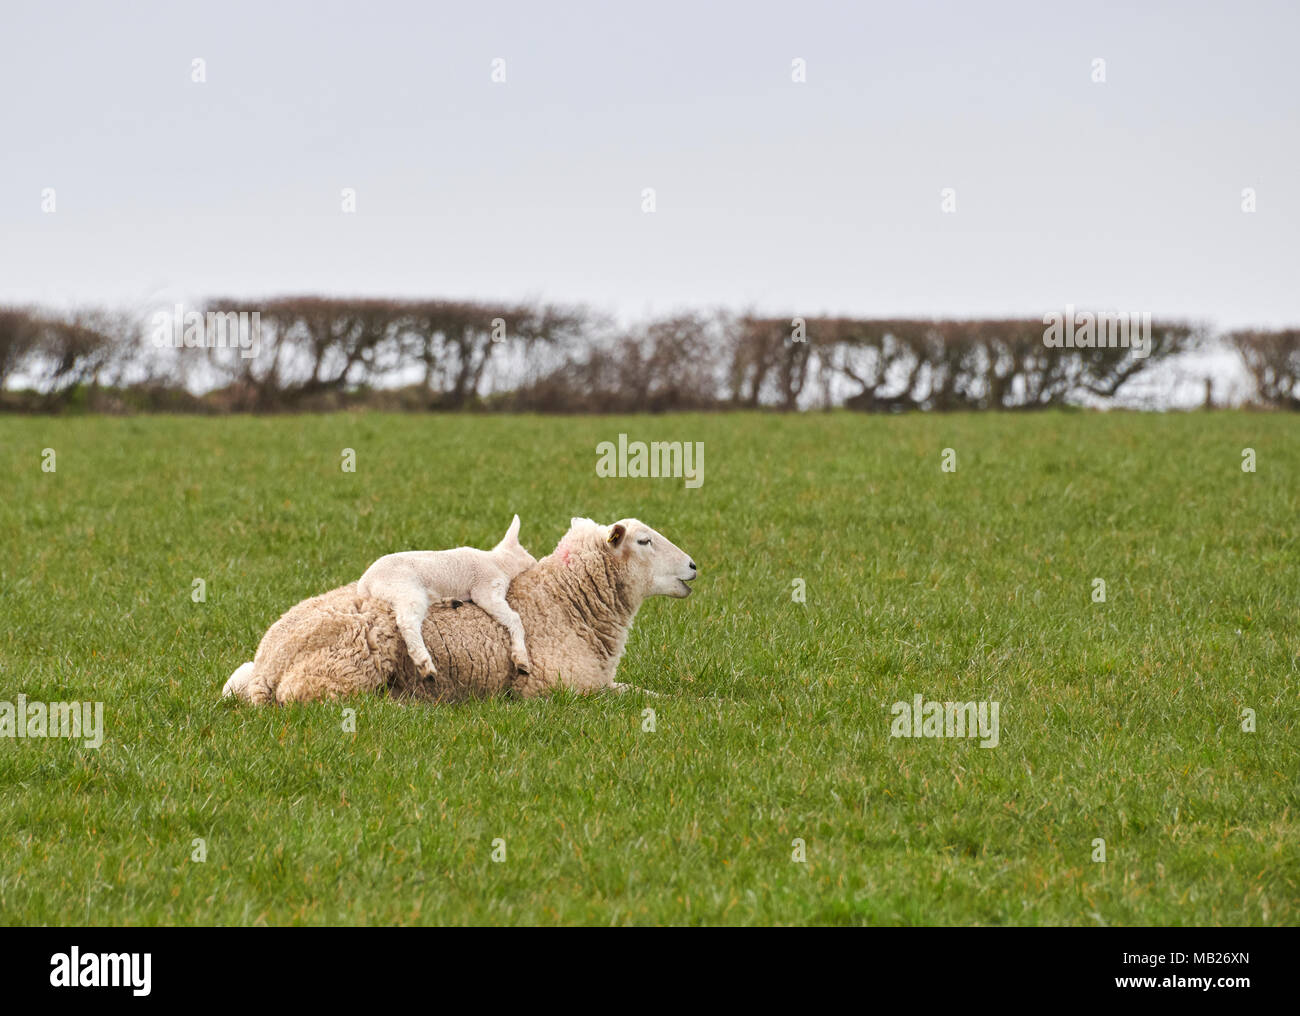 St Brides Major, Wales UK. 5th April 2018, Lambing well under way as weather improves in the Vale of Glamorgan, although this lamb clearly did not want to put its feet on the  damp grass. Credit: Phillip Thomas/Alamy Live News - Stock Image